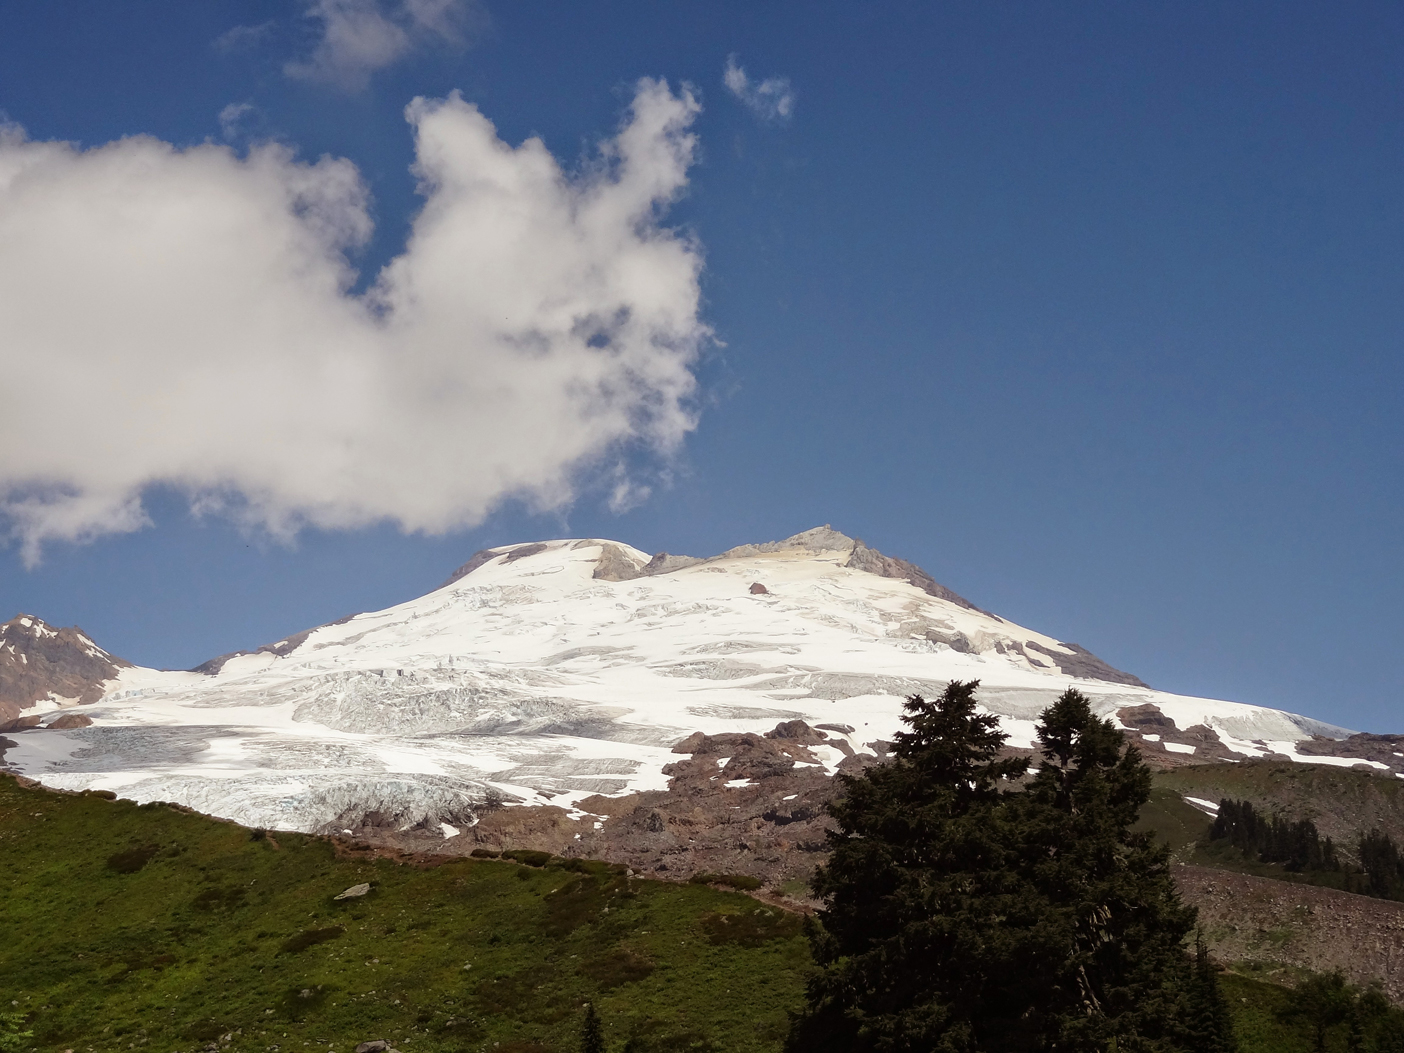 View of Mt. Baker while hiking up Railroad Grade Trail. Photo by Jesica Mangun.